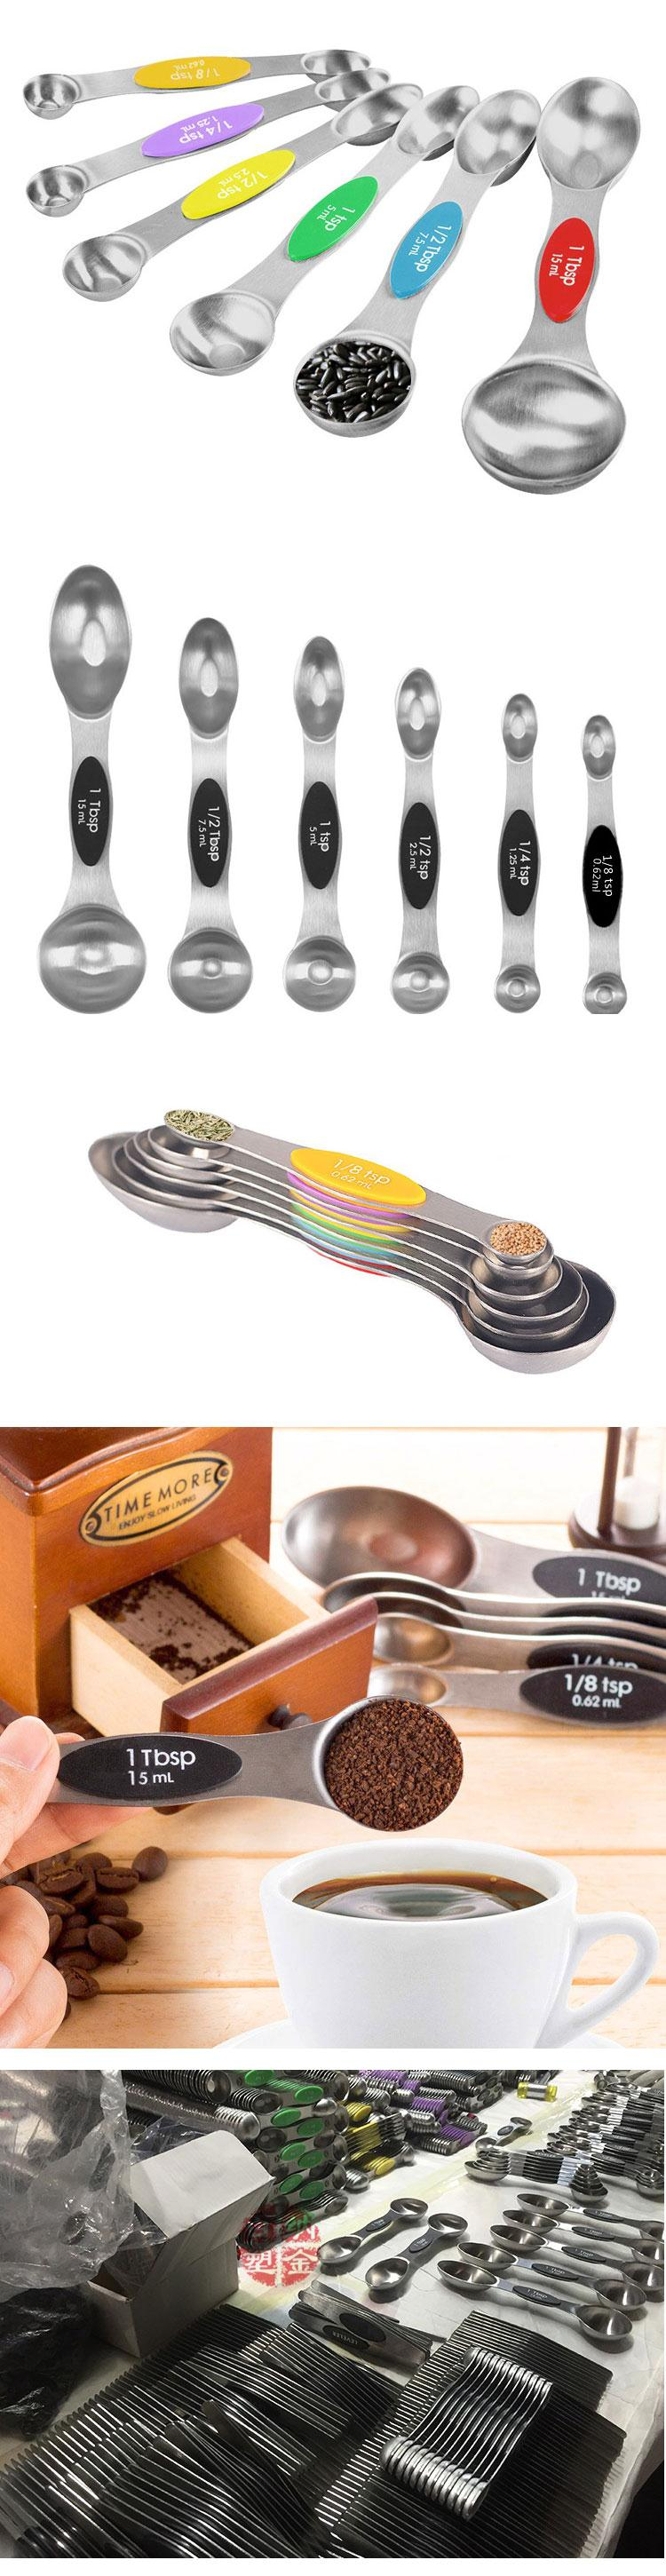 Custom 5 ml teaspoon long handle double sided two head stainless steel magnetic measuring spoons set